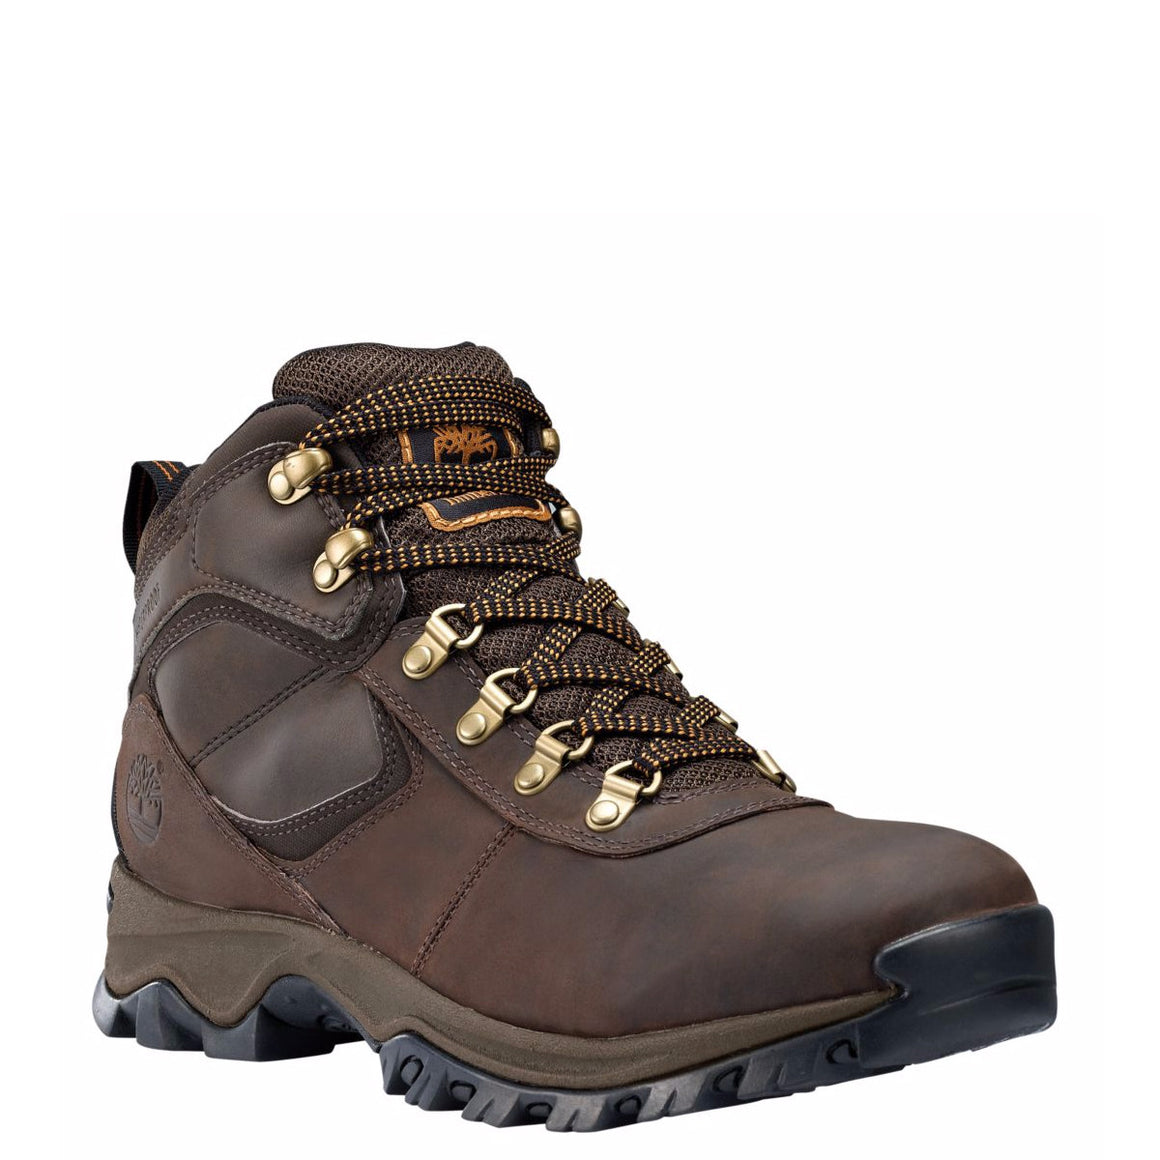 Timberland Pro Men's Mt. Maddsen Mid Waterproof Hiking Boots - Dark Brown 2730R